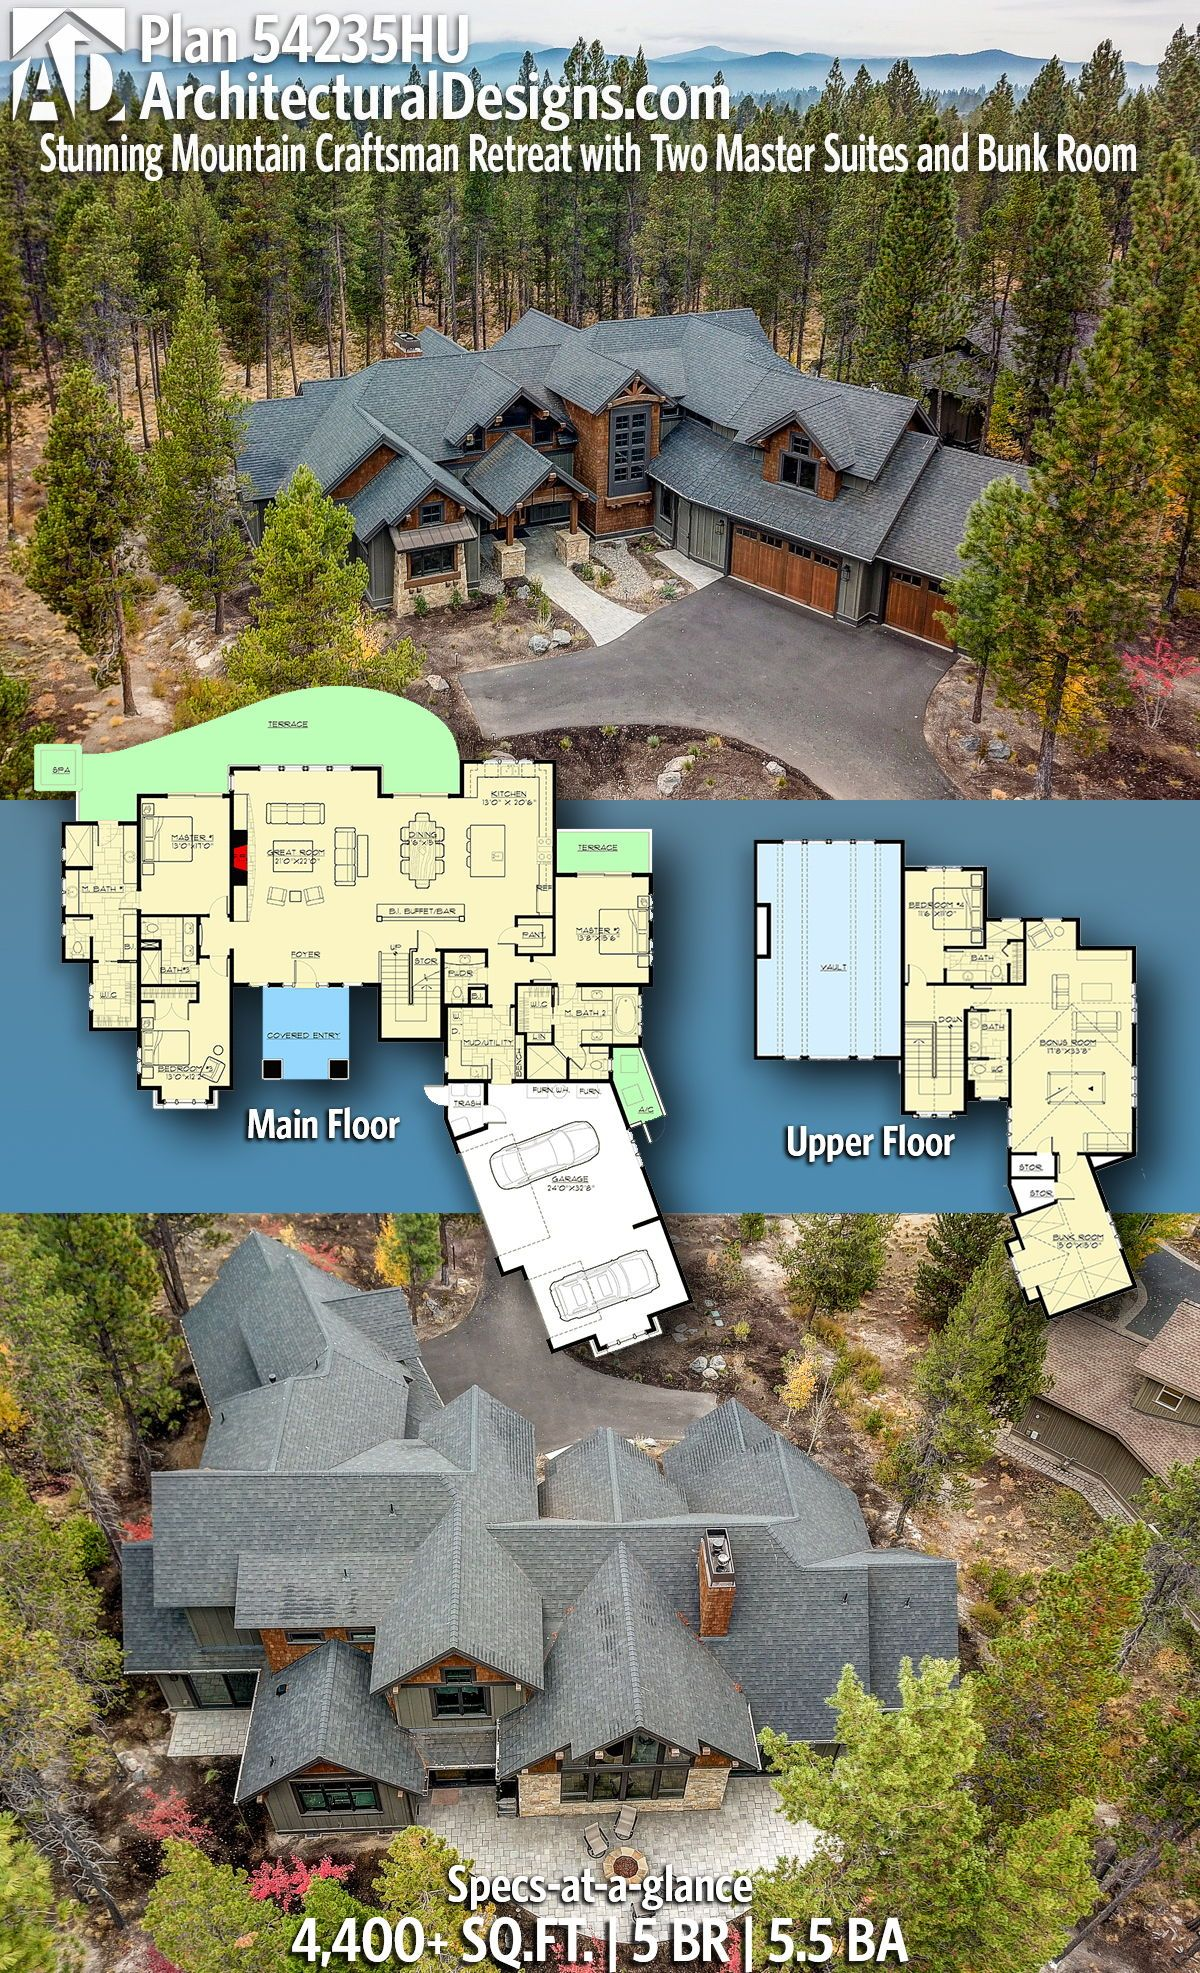 Plan 54235hu Stunning Mountain Craftsman Retreat With Two Master Suites And Bunk Room Rustic House Plans Dream House Plans Architectural Design House Plans